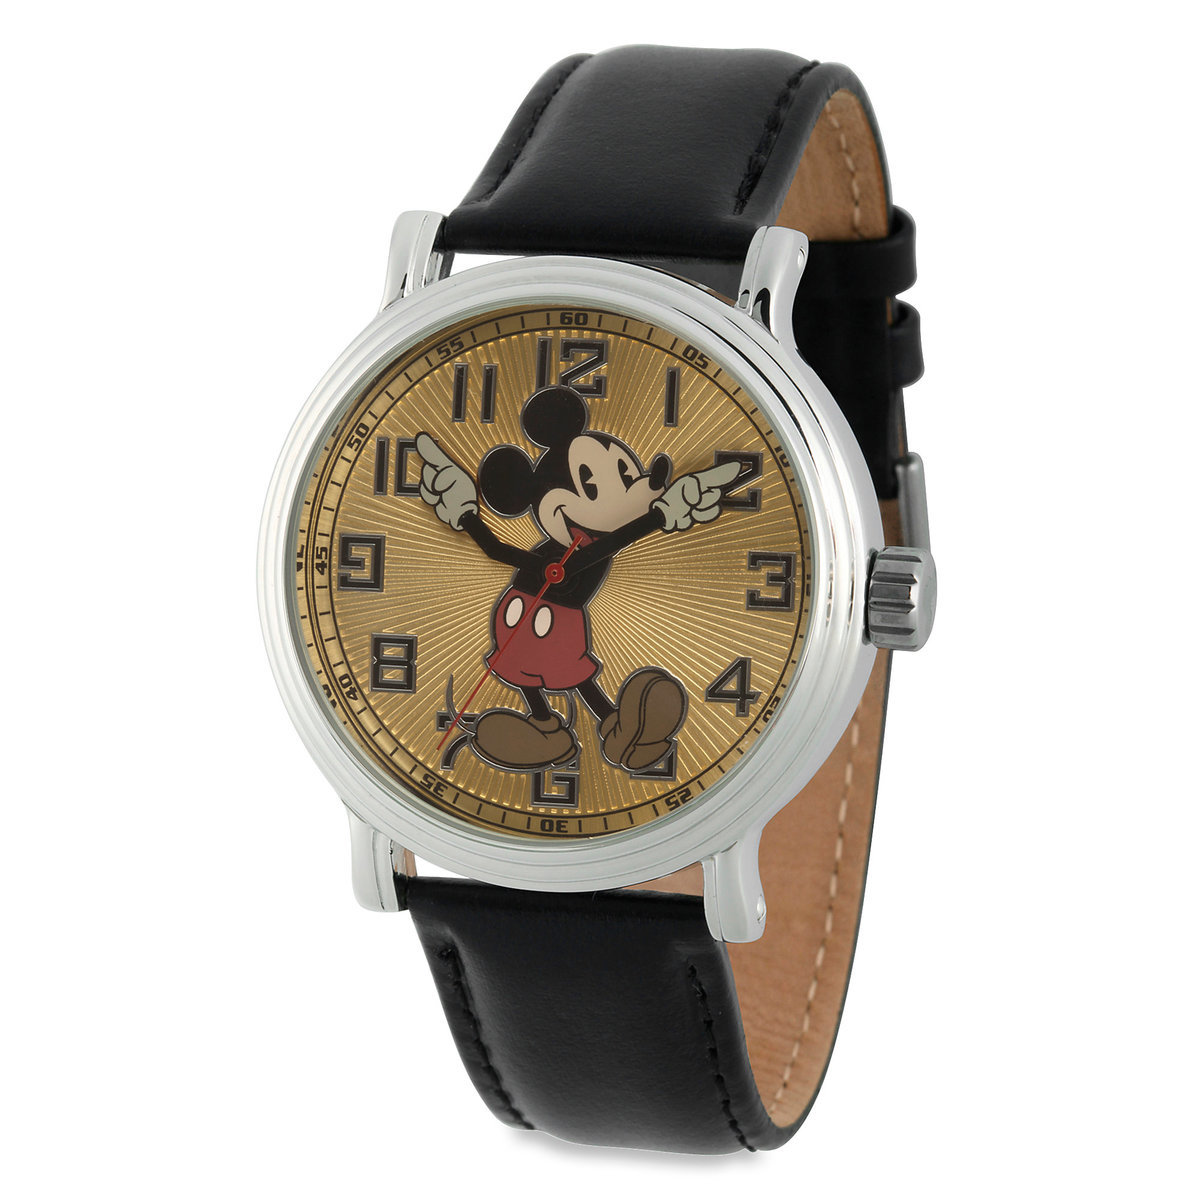 Mickey Mouse Watch Value >> Vintage Mickey Mouse Watch Adults Shopdisney